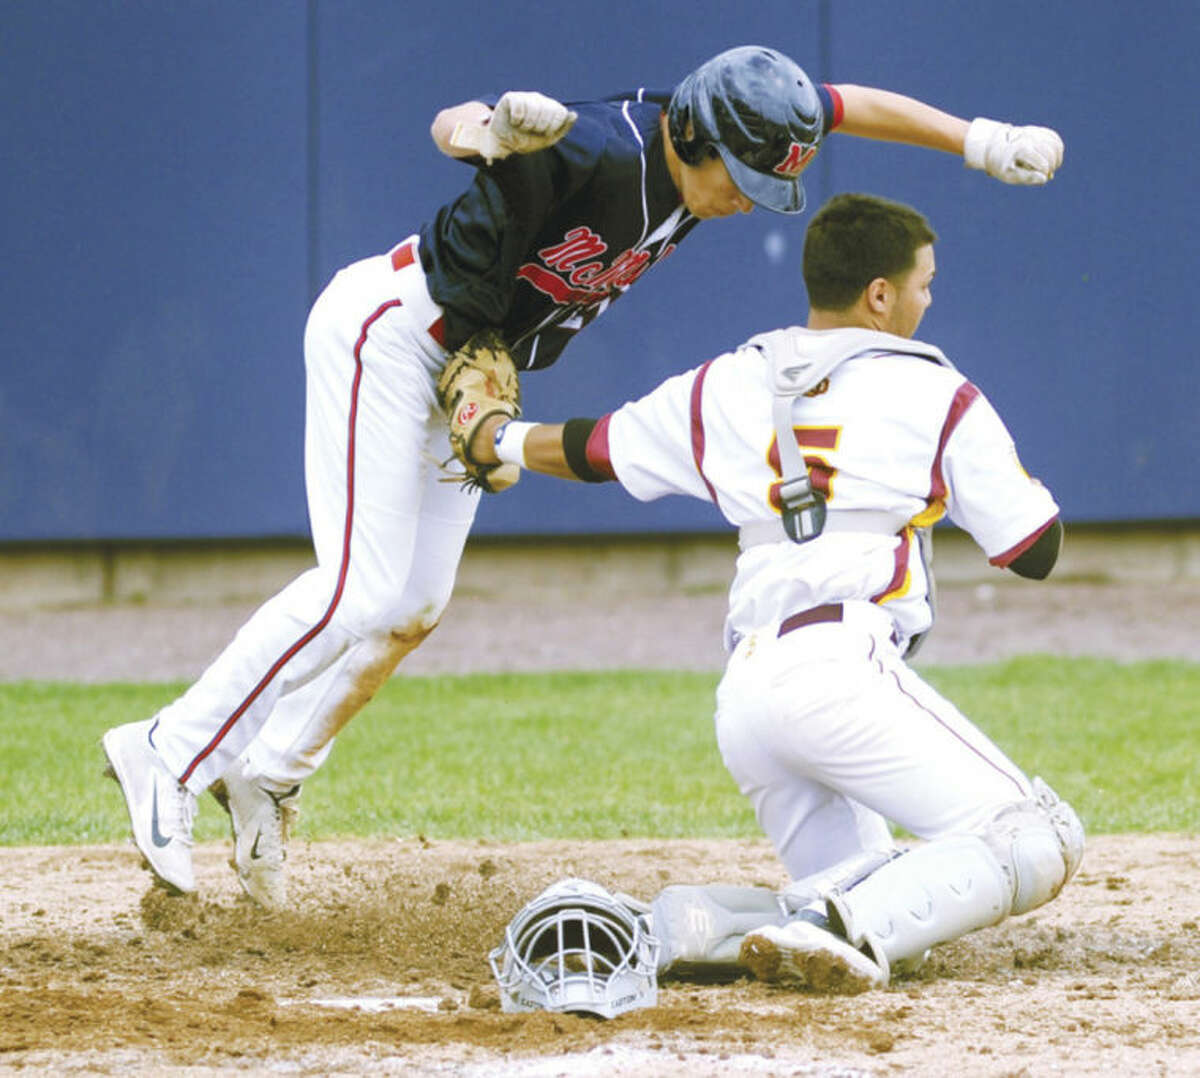 Hour photo/John Nash Brien McMahon base runner Drew Pace, left, is tagged out at home by St. Joseph catcher Ismael Herrara during the sevenh inning of Saturday's high school baseball regular season finale at The Ballpark at Harbor Yard in Bridgeport.